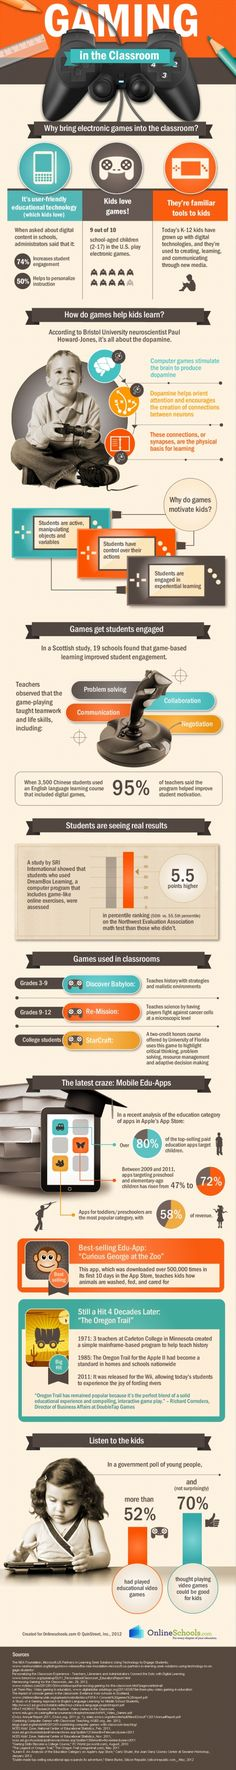 gaming in the classroom